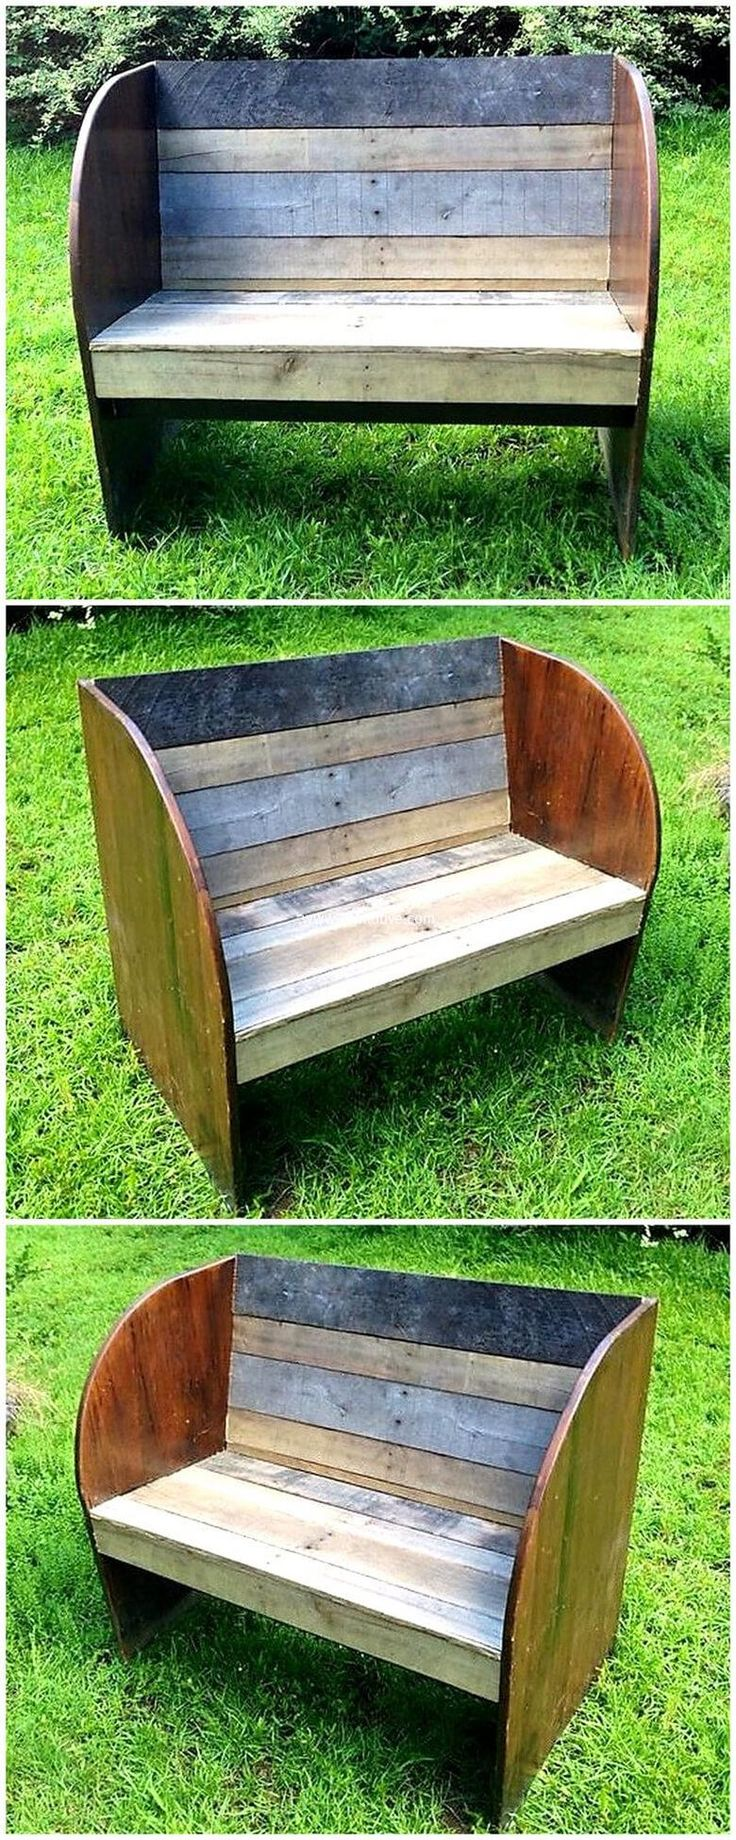 Your garden needs to be furnished in well organized style. Re-purposed wood pallet garden bench is designed in smashing style. Its round style is incredible. Such project offers you to endow your garden in divergent style.  #pallets #woodpallet #palletfurniture #palletproject #palletideas #recycle #recycledpallet #reclaimed #repurposed #reused #restore #upcycle #diy #palletart #pallet #recycling #upcycling #refurnish #recycled #woodwork #woodworking